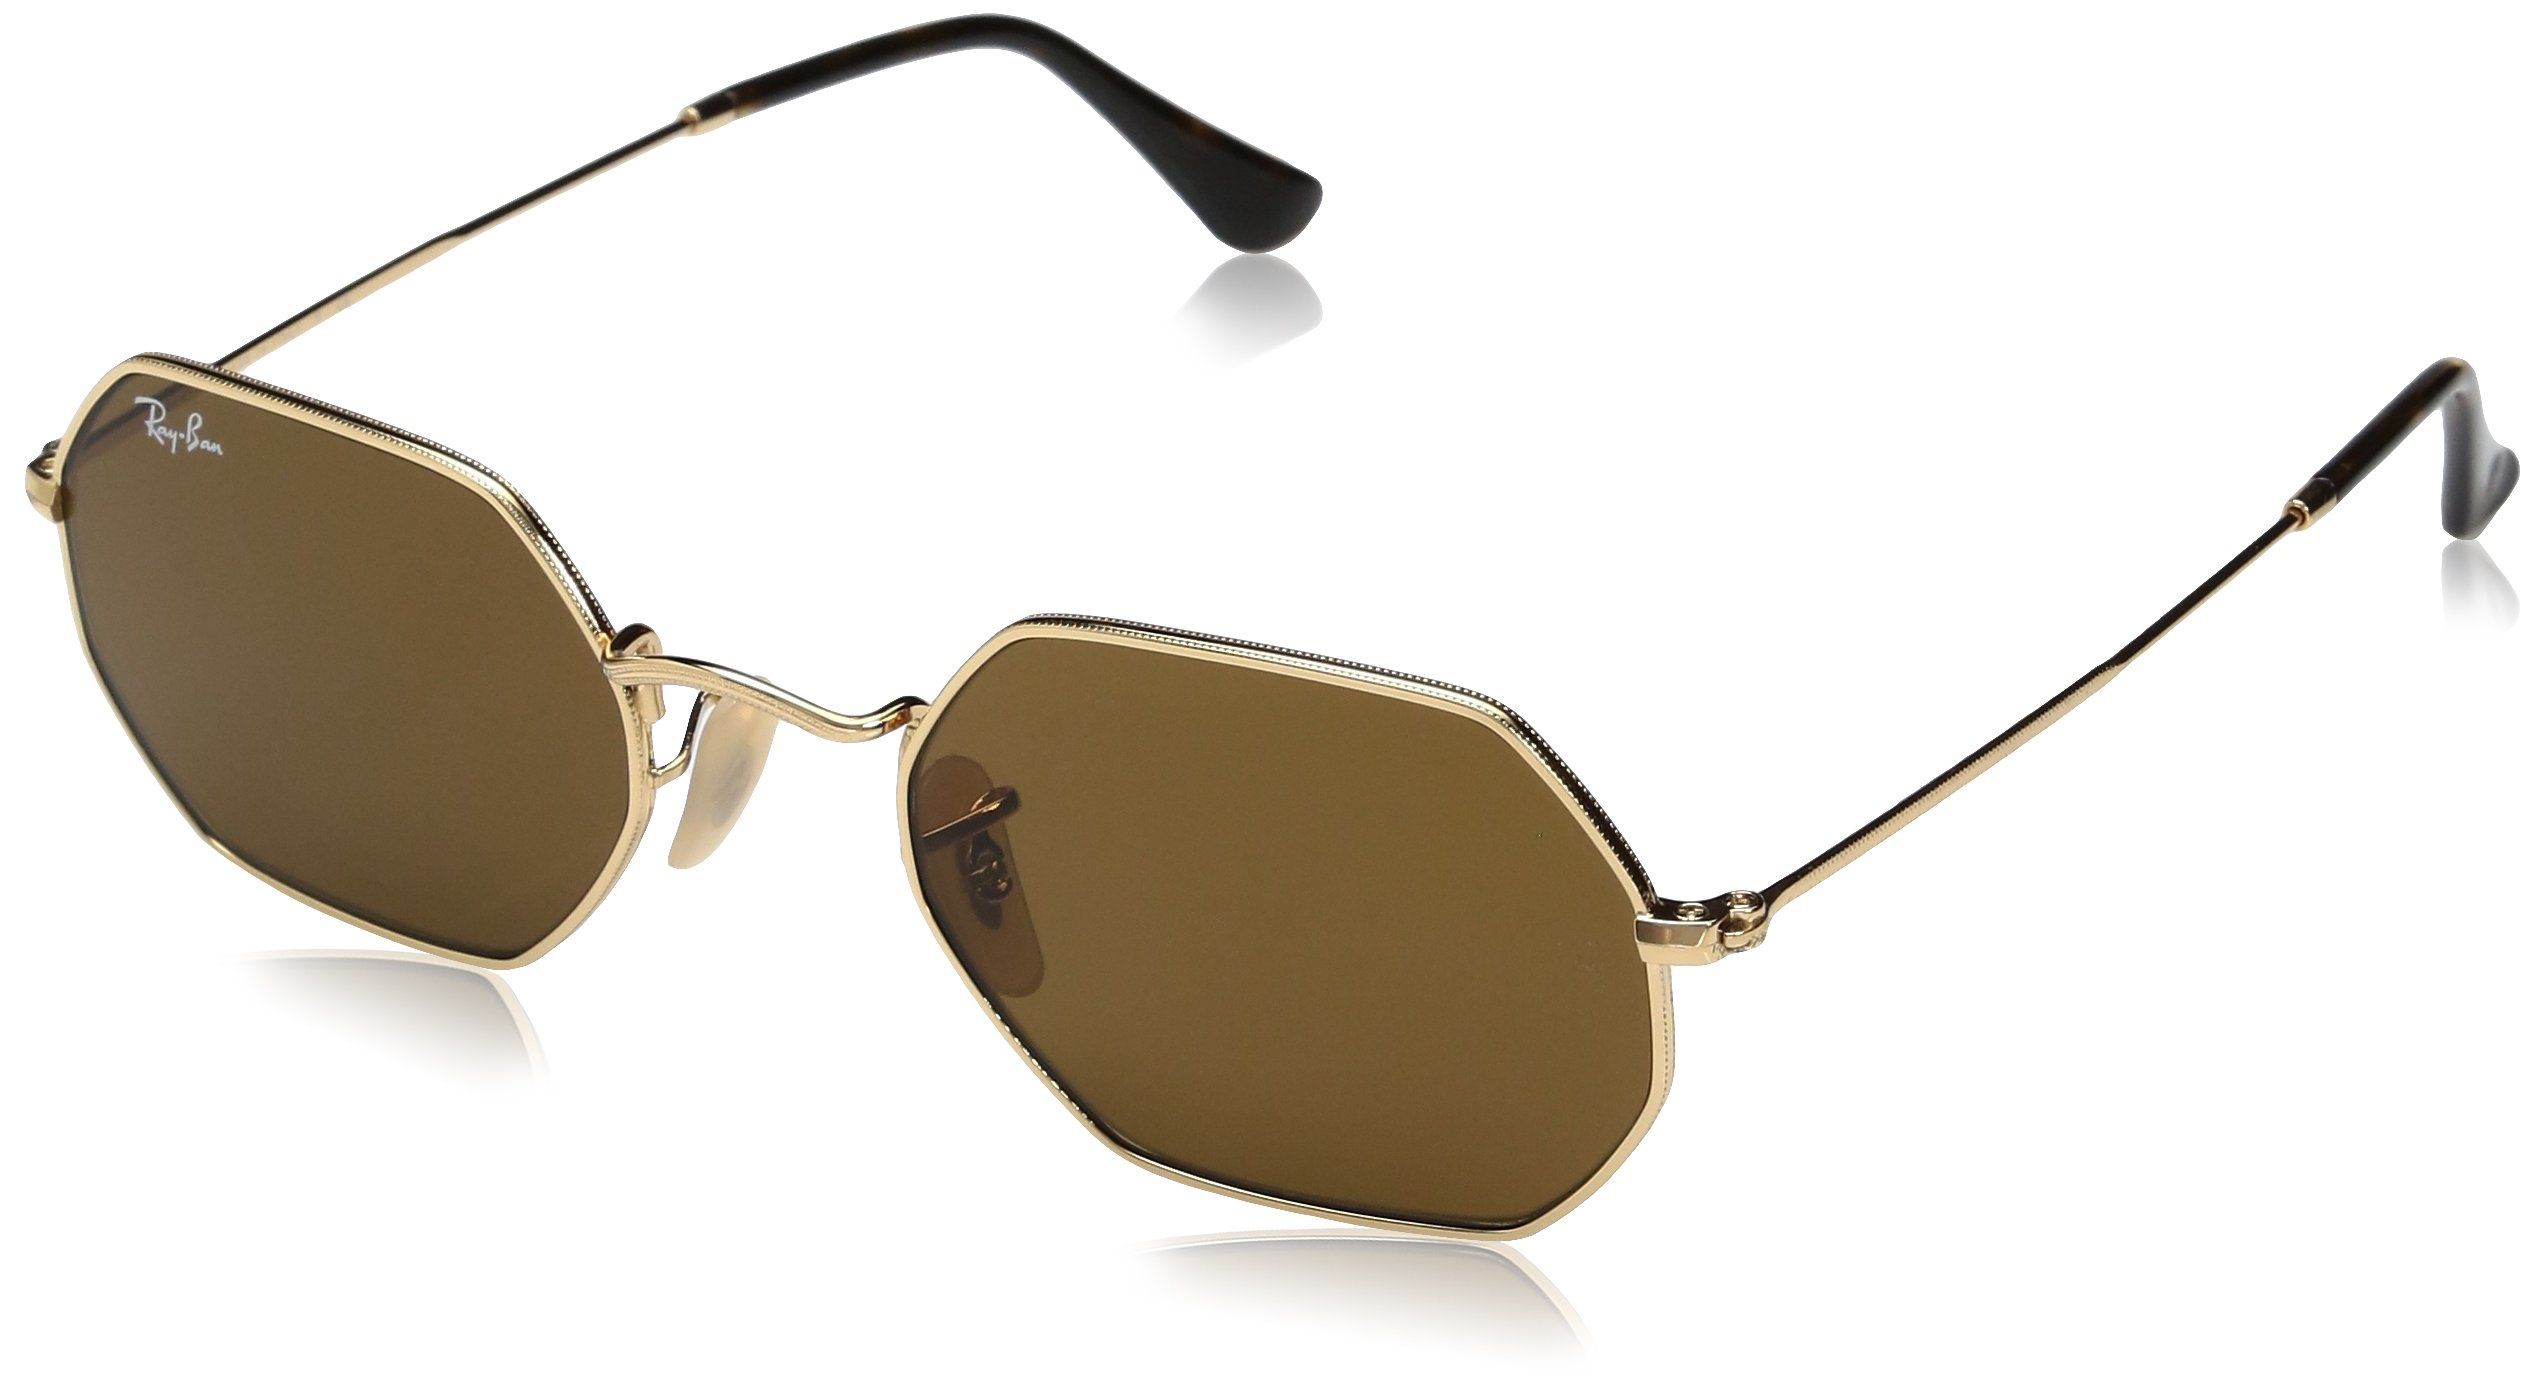 Ray-Ban Metal Unisex Oval Sunglasses, Gold, 53 mm by Ray-Ban